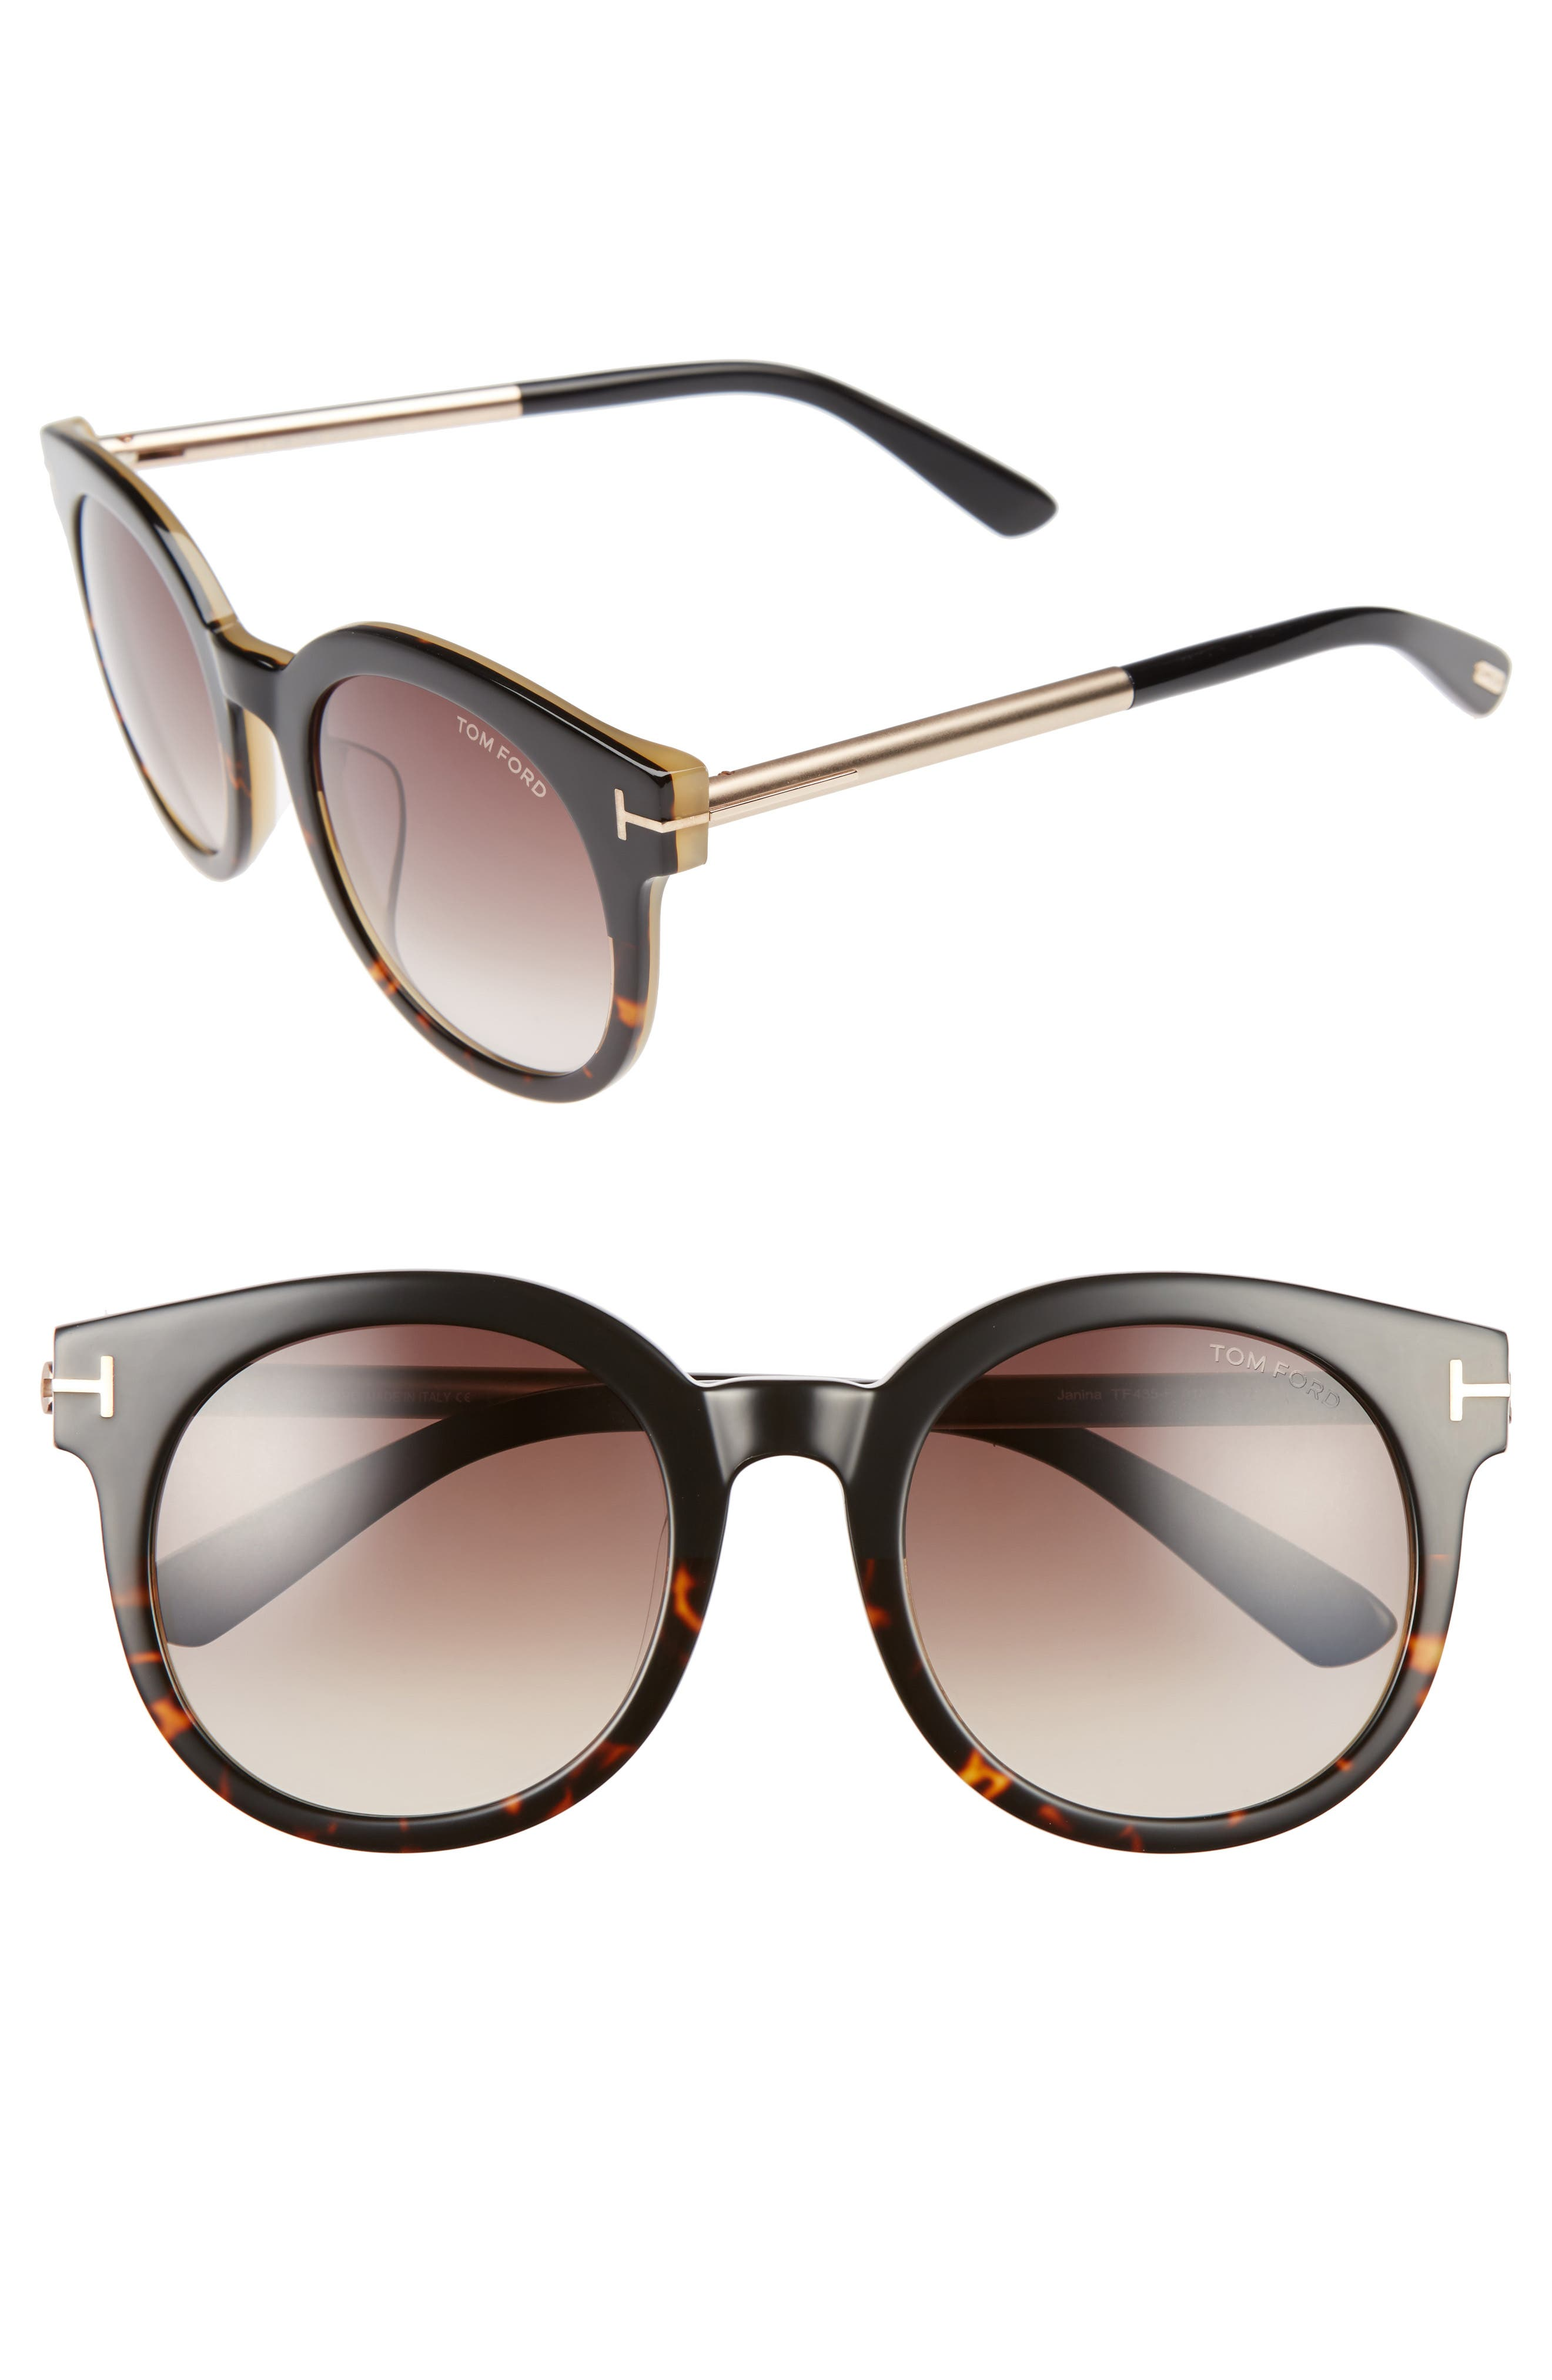 Janina 53mm Special Fit Round Sunglasses,                         Main,                         color, 001